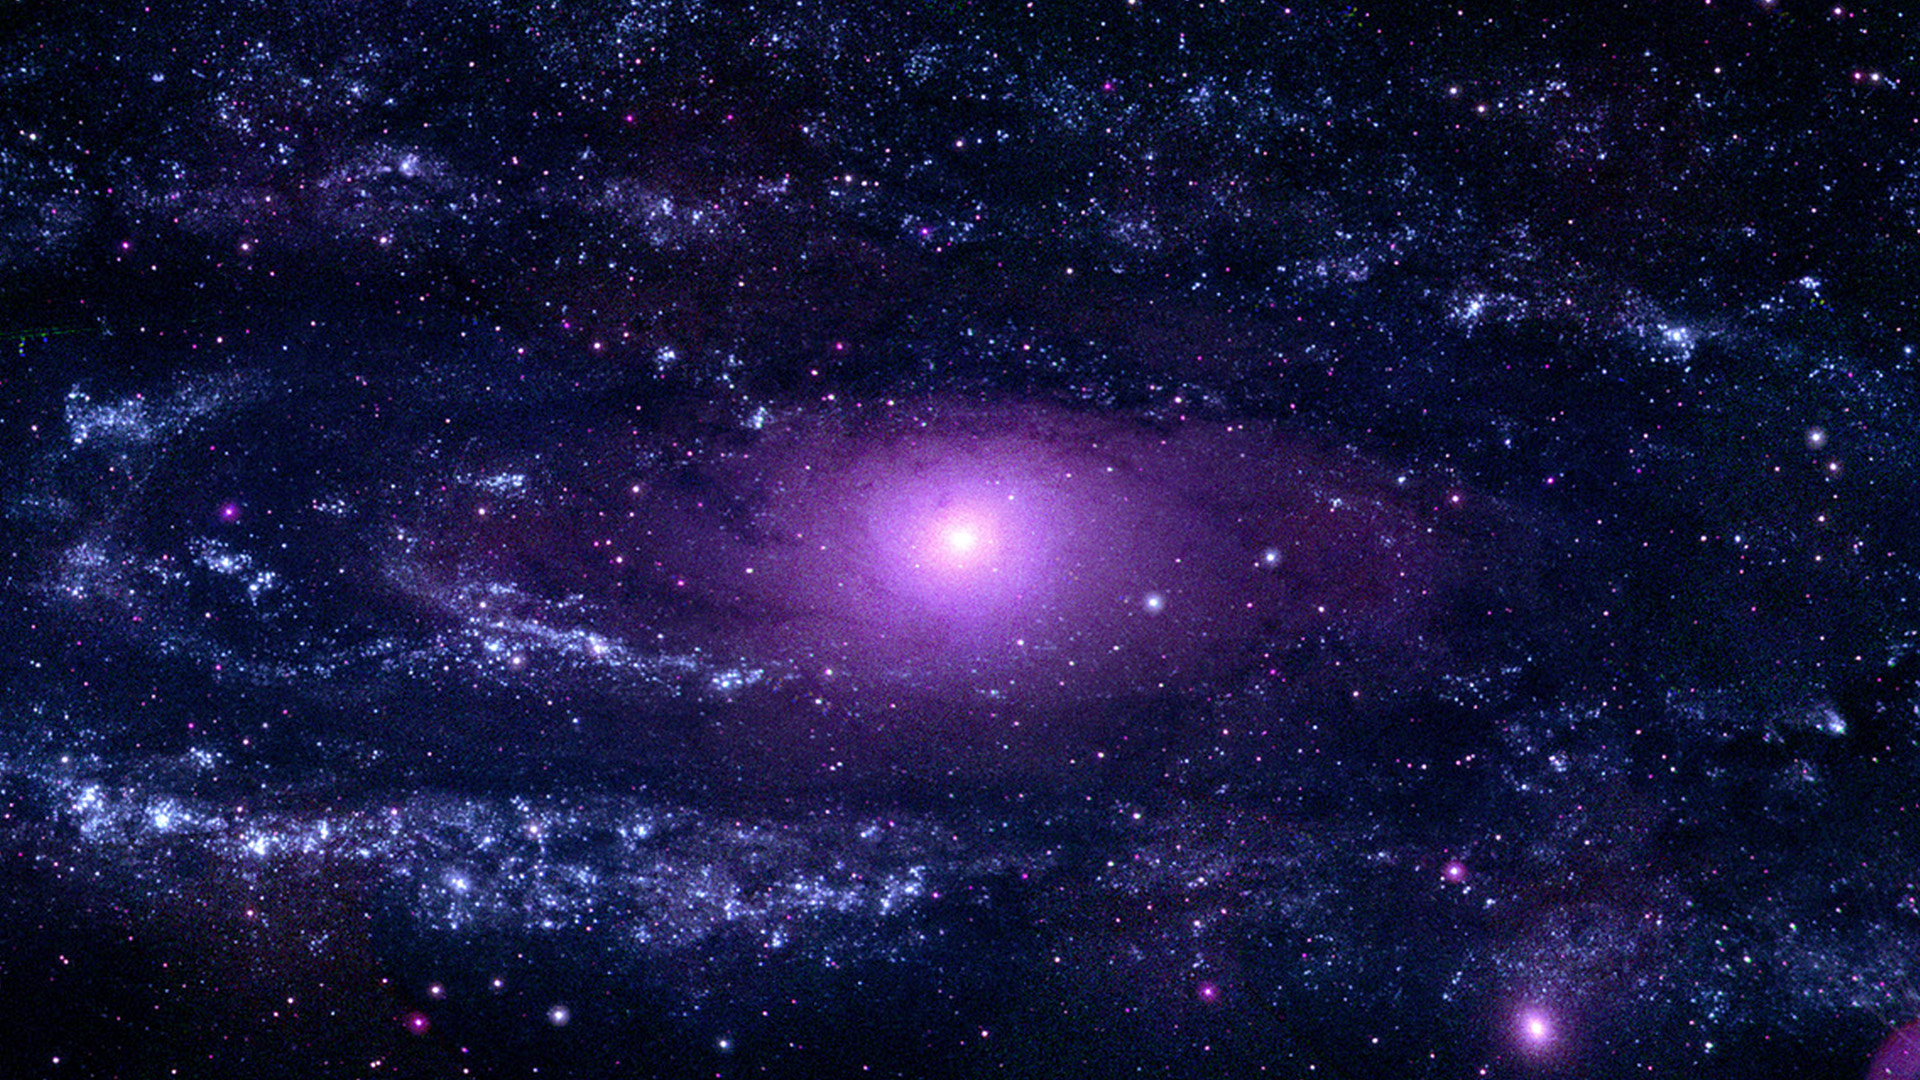 NASA Viz: The Andromeda Galaxy